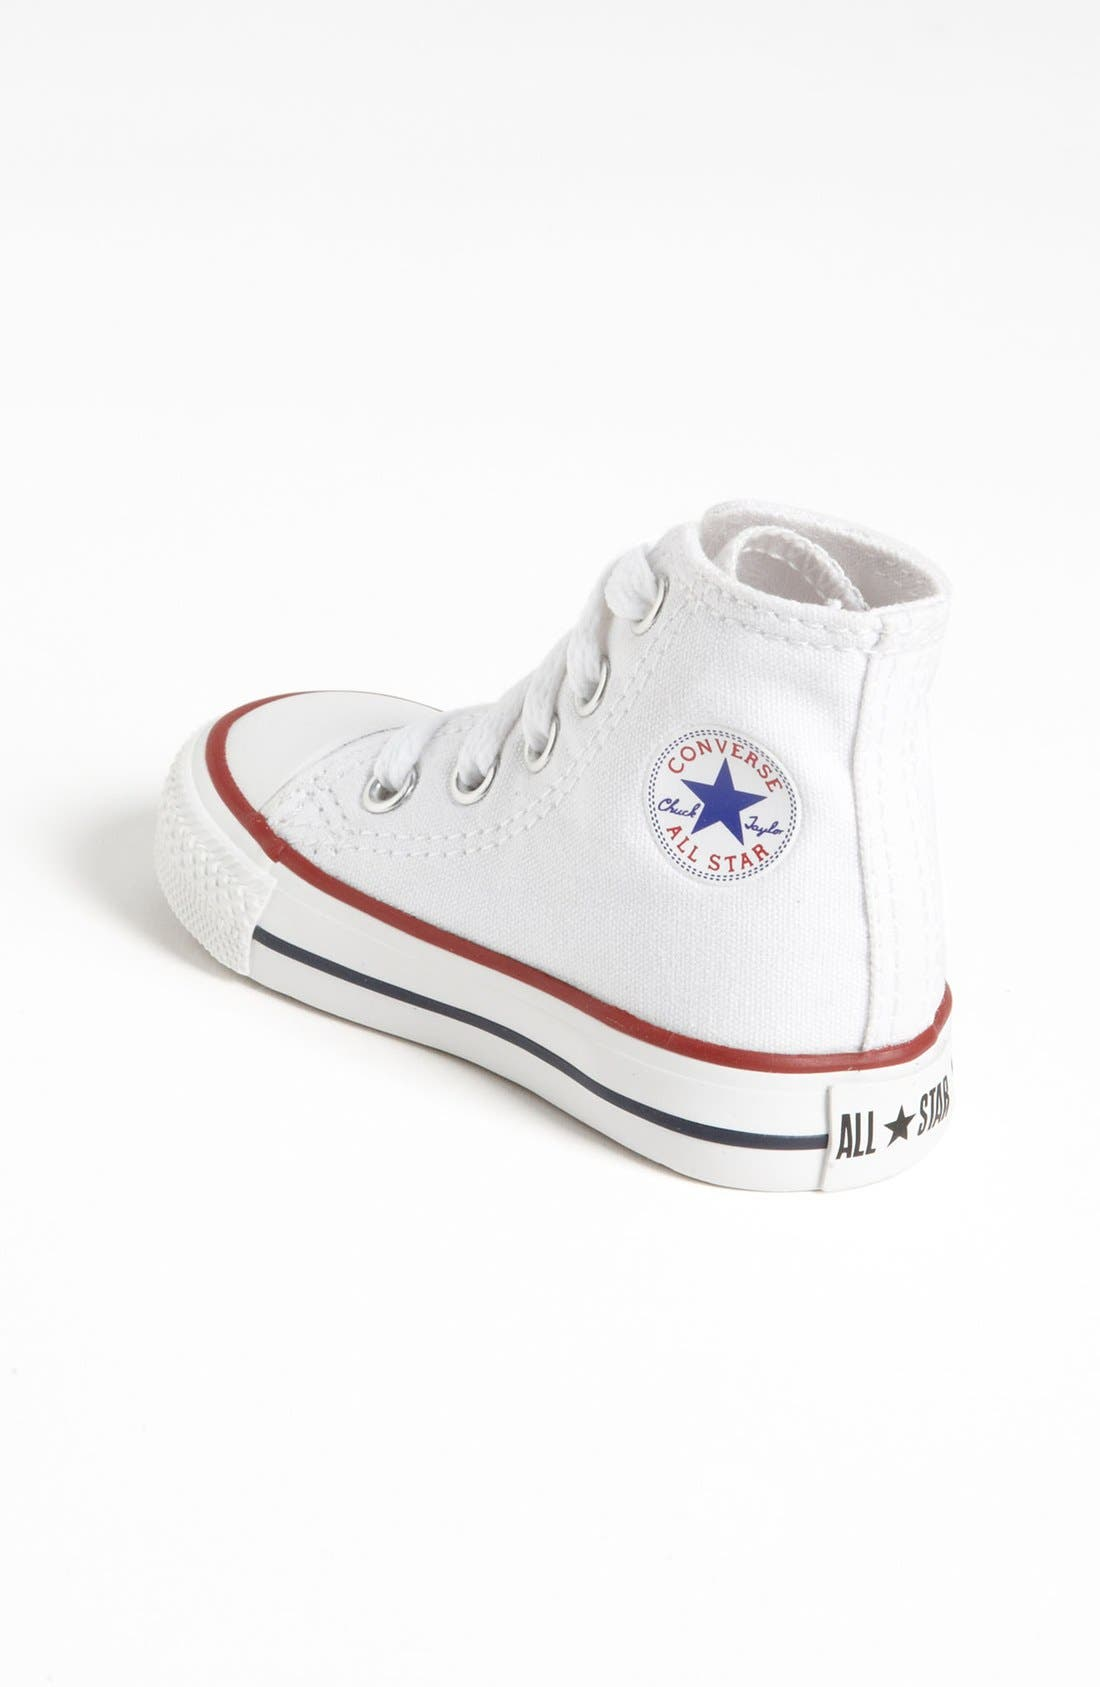 All Star<sup>®</sup> High Top Sneaker,                             Alternate thumbnail 2, color,                             OPTIC WHITE